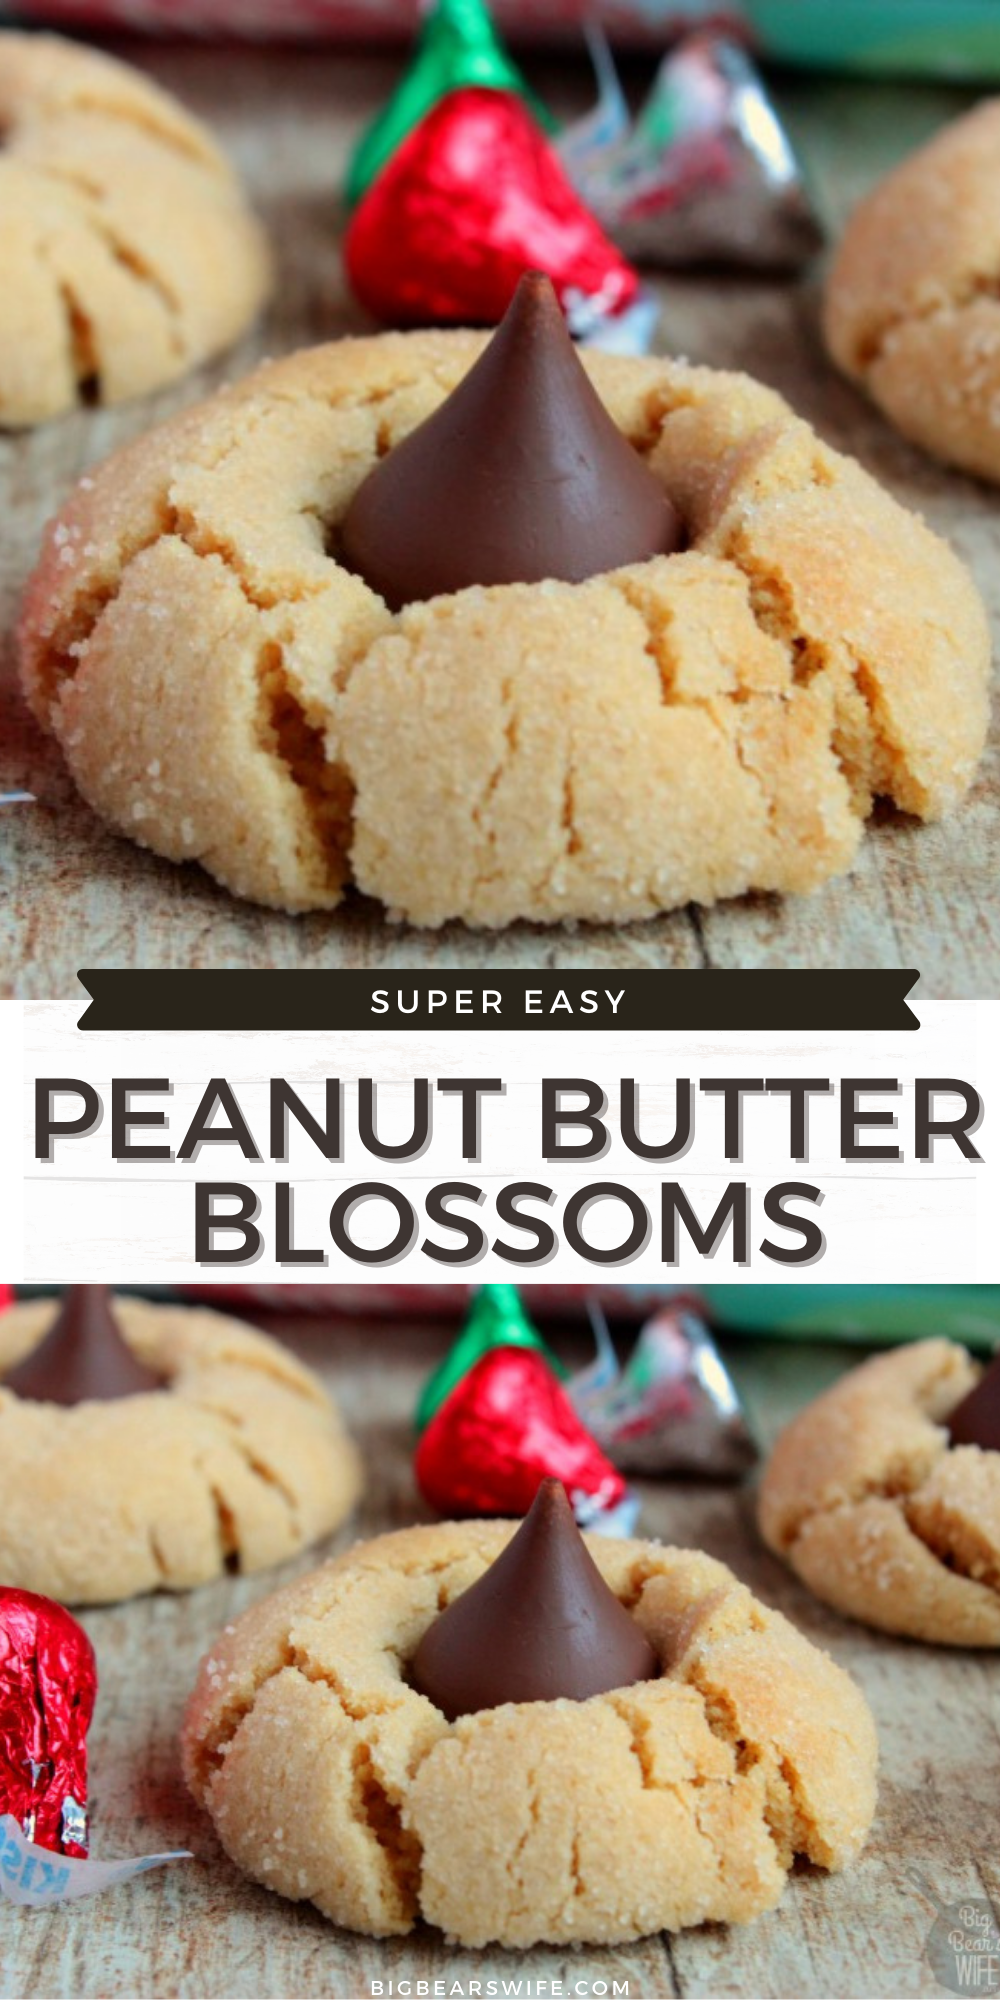 Peanut Butter Blossoms - Chocolate Kiss Peanut Butter Cookies- Sweet Peanut Butter cookies rolled in sugar and then baked to perfection! As soon as they come out of the oven, press a chocolate kiss down into the center to make the best Peanut Butter Blossoms! via @bigbearswife